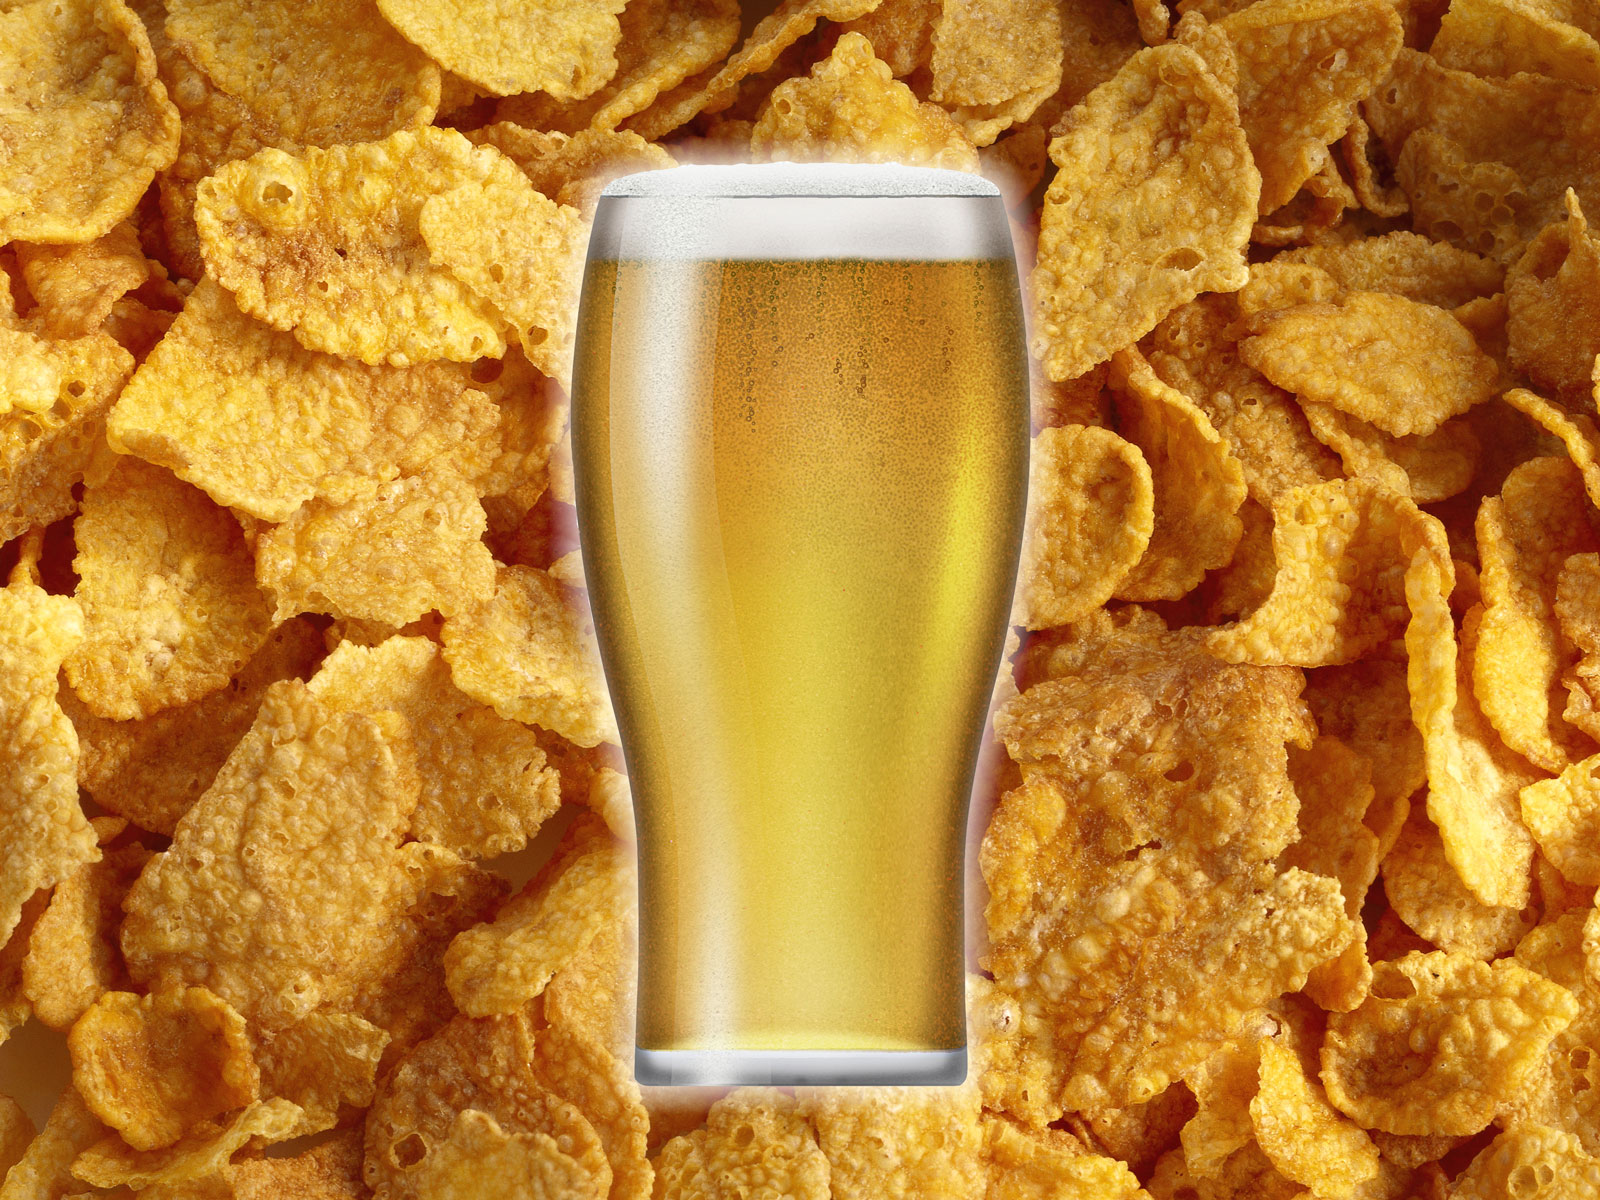 corn-flakes-beer-FT-BLOG1218.jpg